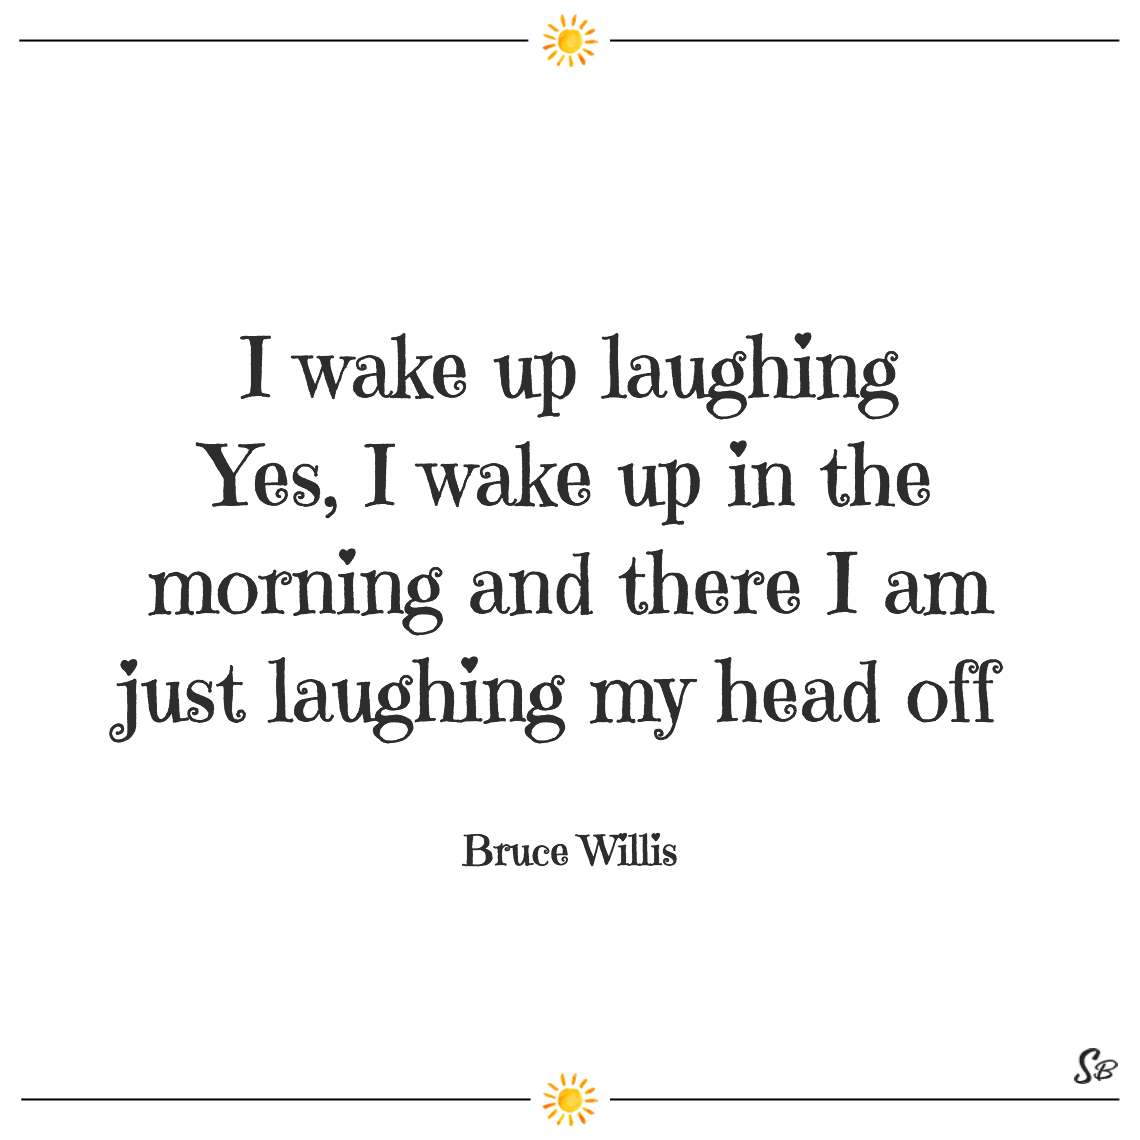 I wake up laughing yes, i wake up in the morning and there i am just laughing my head off bruce willis